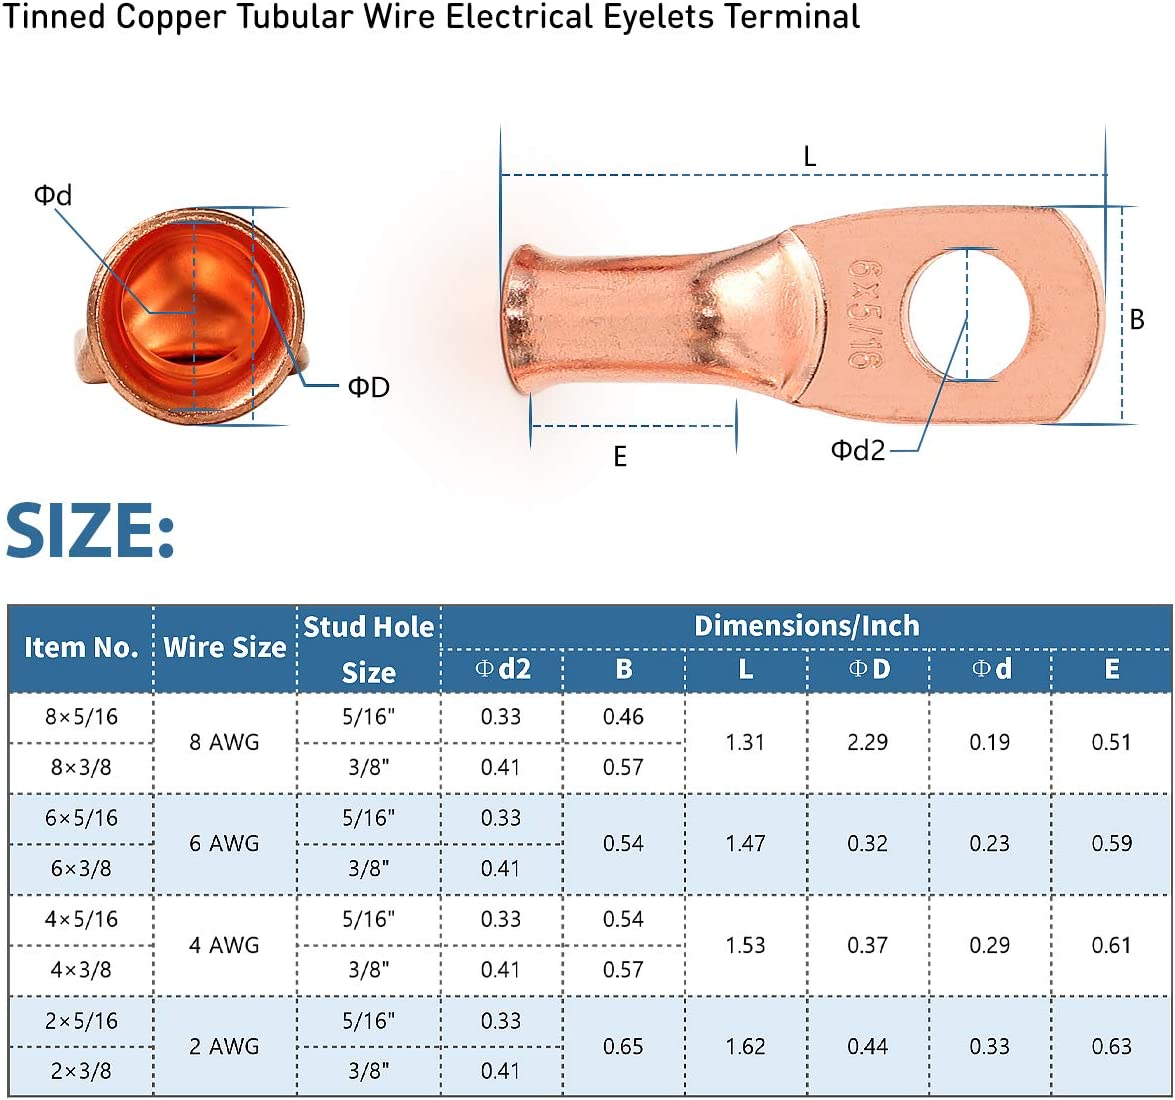 12PCS 6x5//16 Copper Ring Terminal Connectors 6 AWG Heavy Duty Battery Cable Ends Bare Copper Lugs with 12 PCS 3:1 Heat Shrink Tubing for Vehicle Boat Marine Use